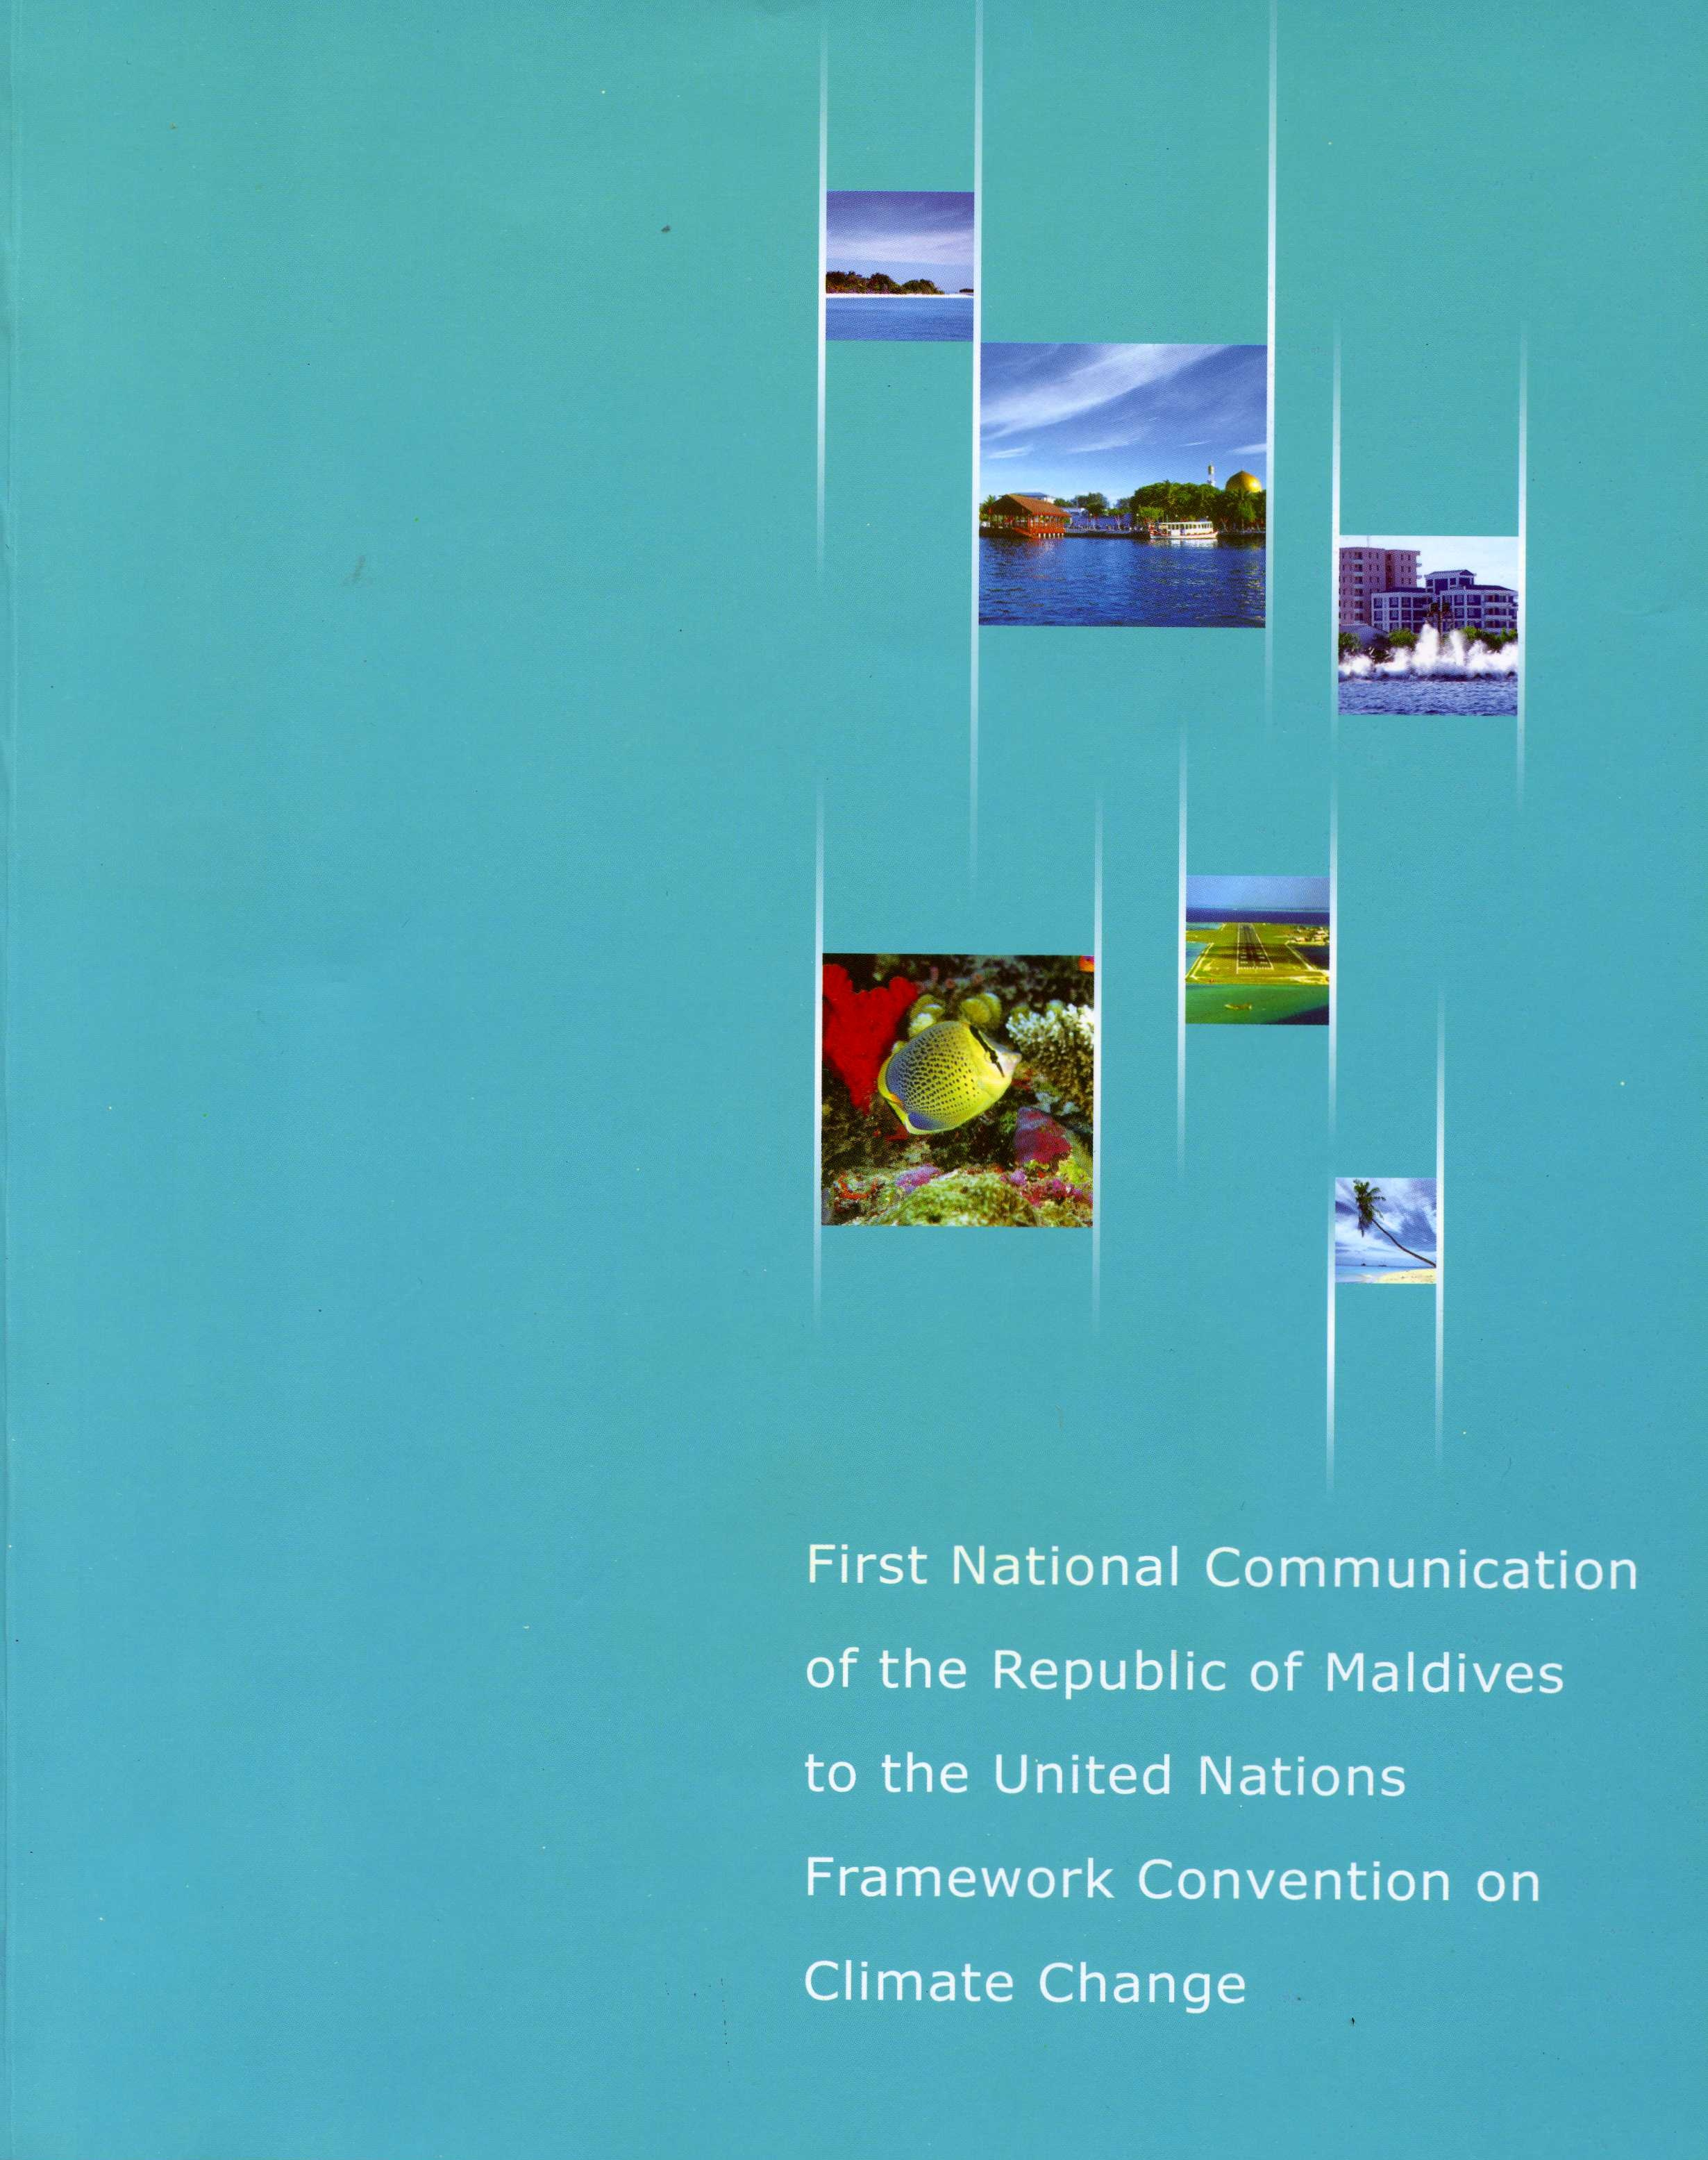 Editor  Ministry of Home Affairs, Housing and Environment (2001)  First National Communication of the Republic of Maldives to the United Nations Framework Convention on Climate Change.  Ministry of Home Affairs, Housing and Environment: Republic of Maldives.  ISBN:99915-828-3-5